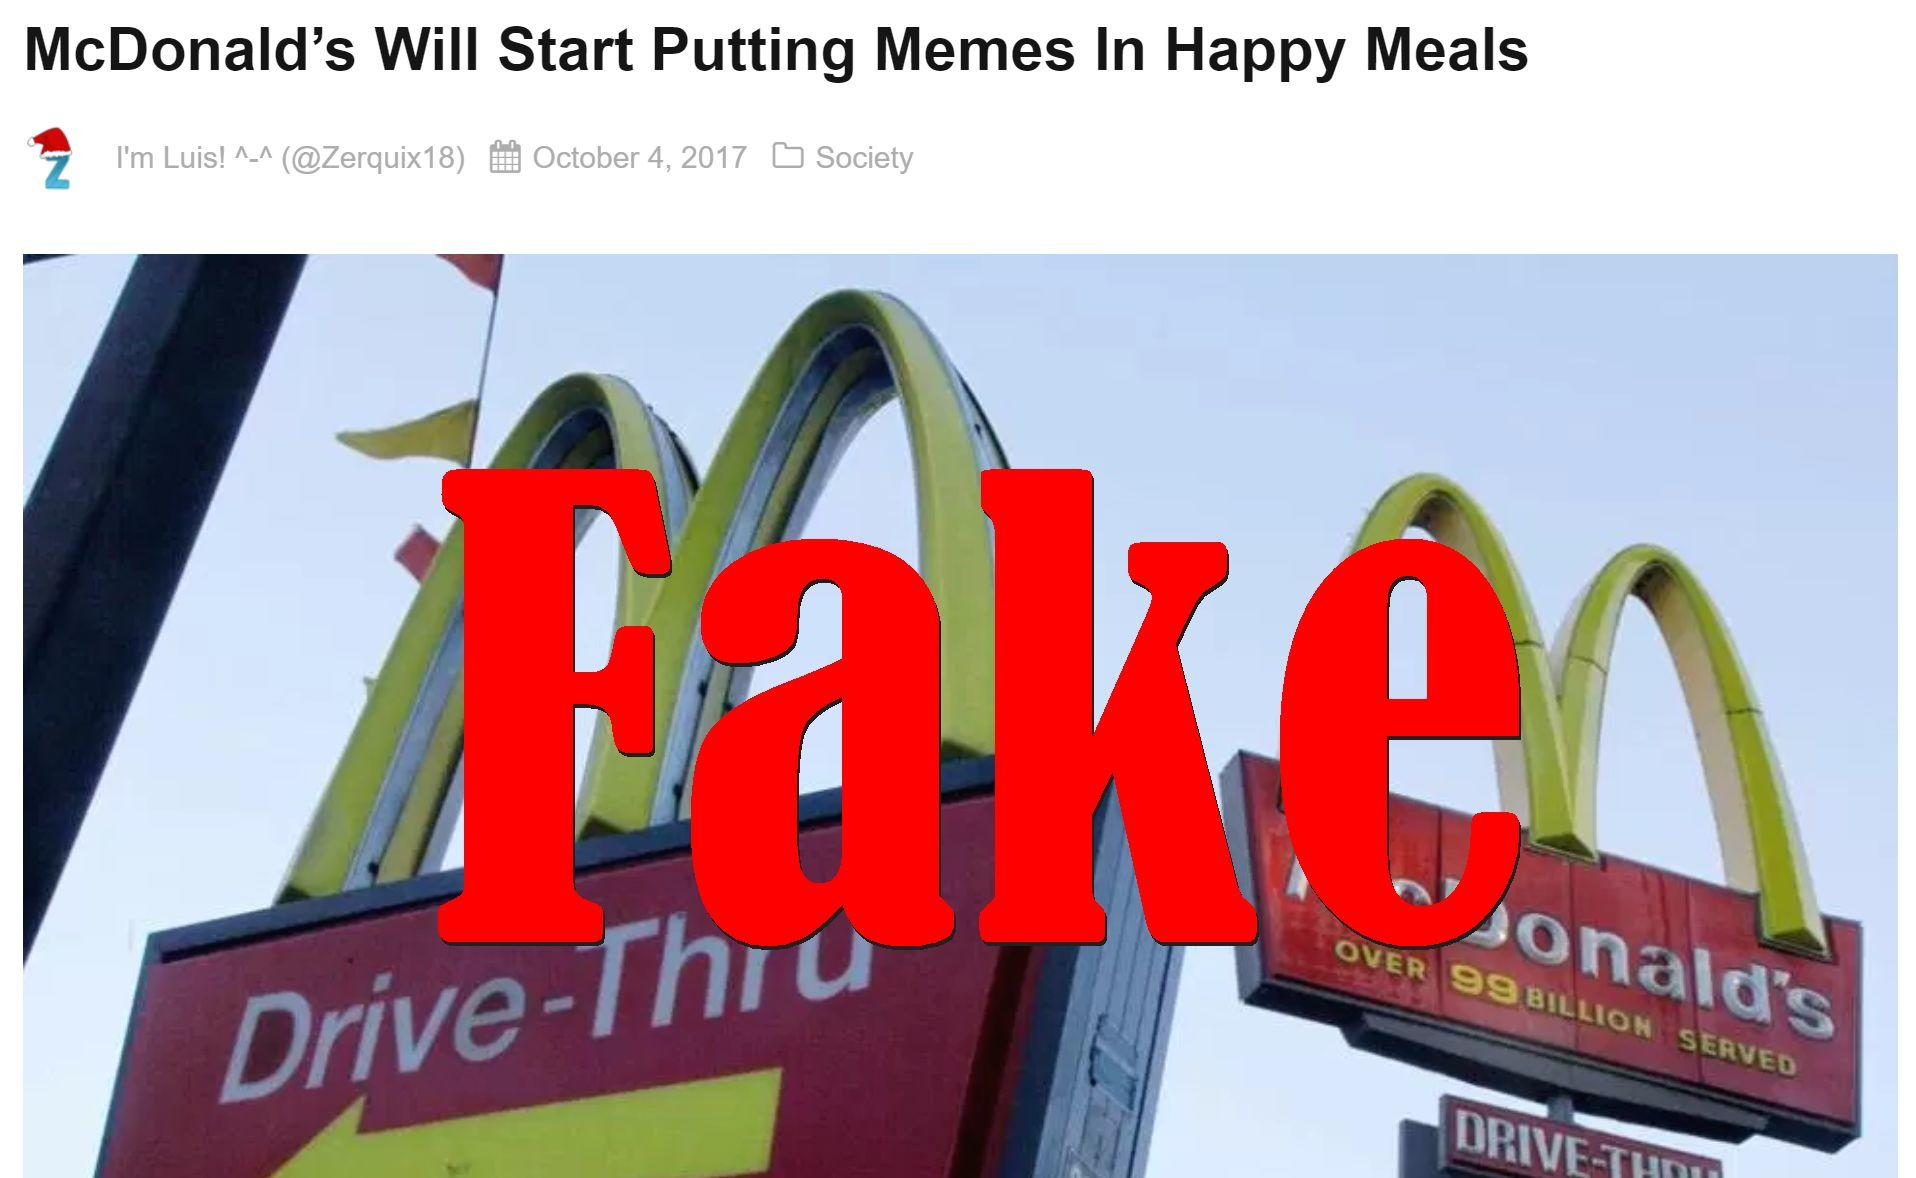 Fake News: McDonald's Will NOT Start Putting Memes In Happy Meals